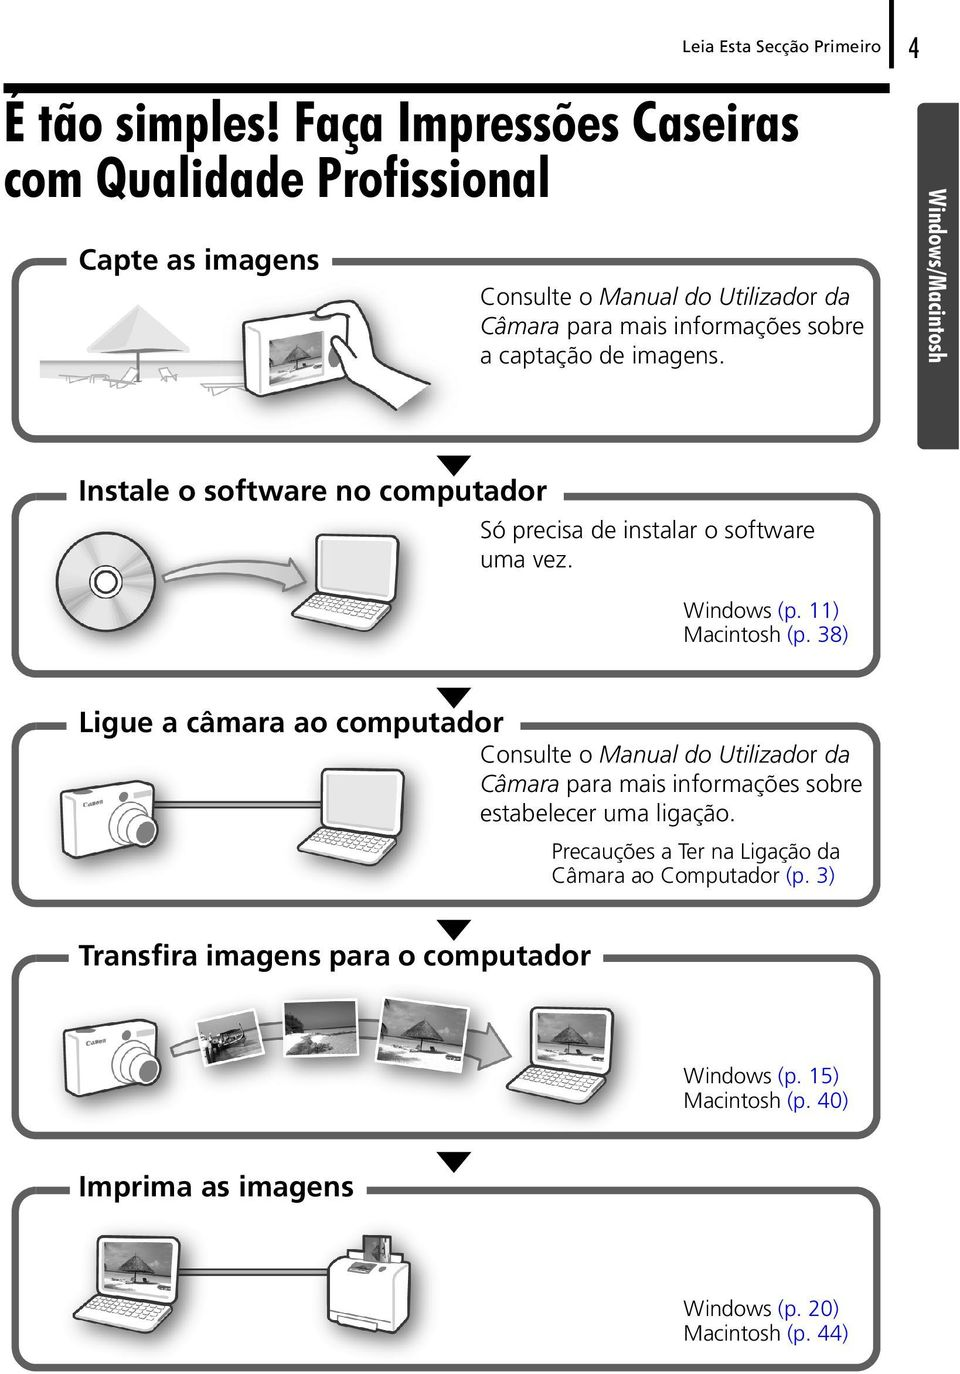 imagens. Windows/Macintosh Instale o software no computador Só precisa de instalar o software uma vez. Windows (p. 11) Macintosh (p.